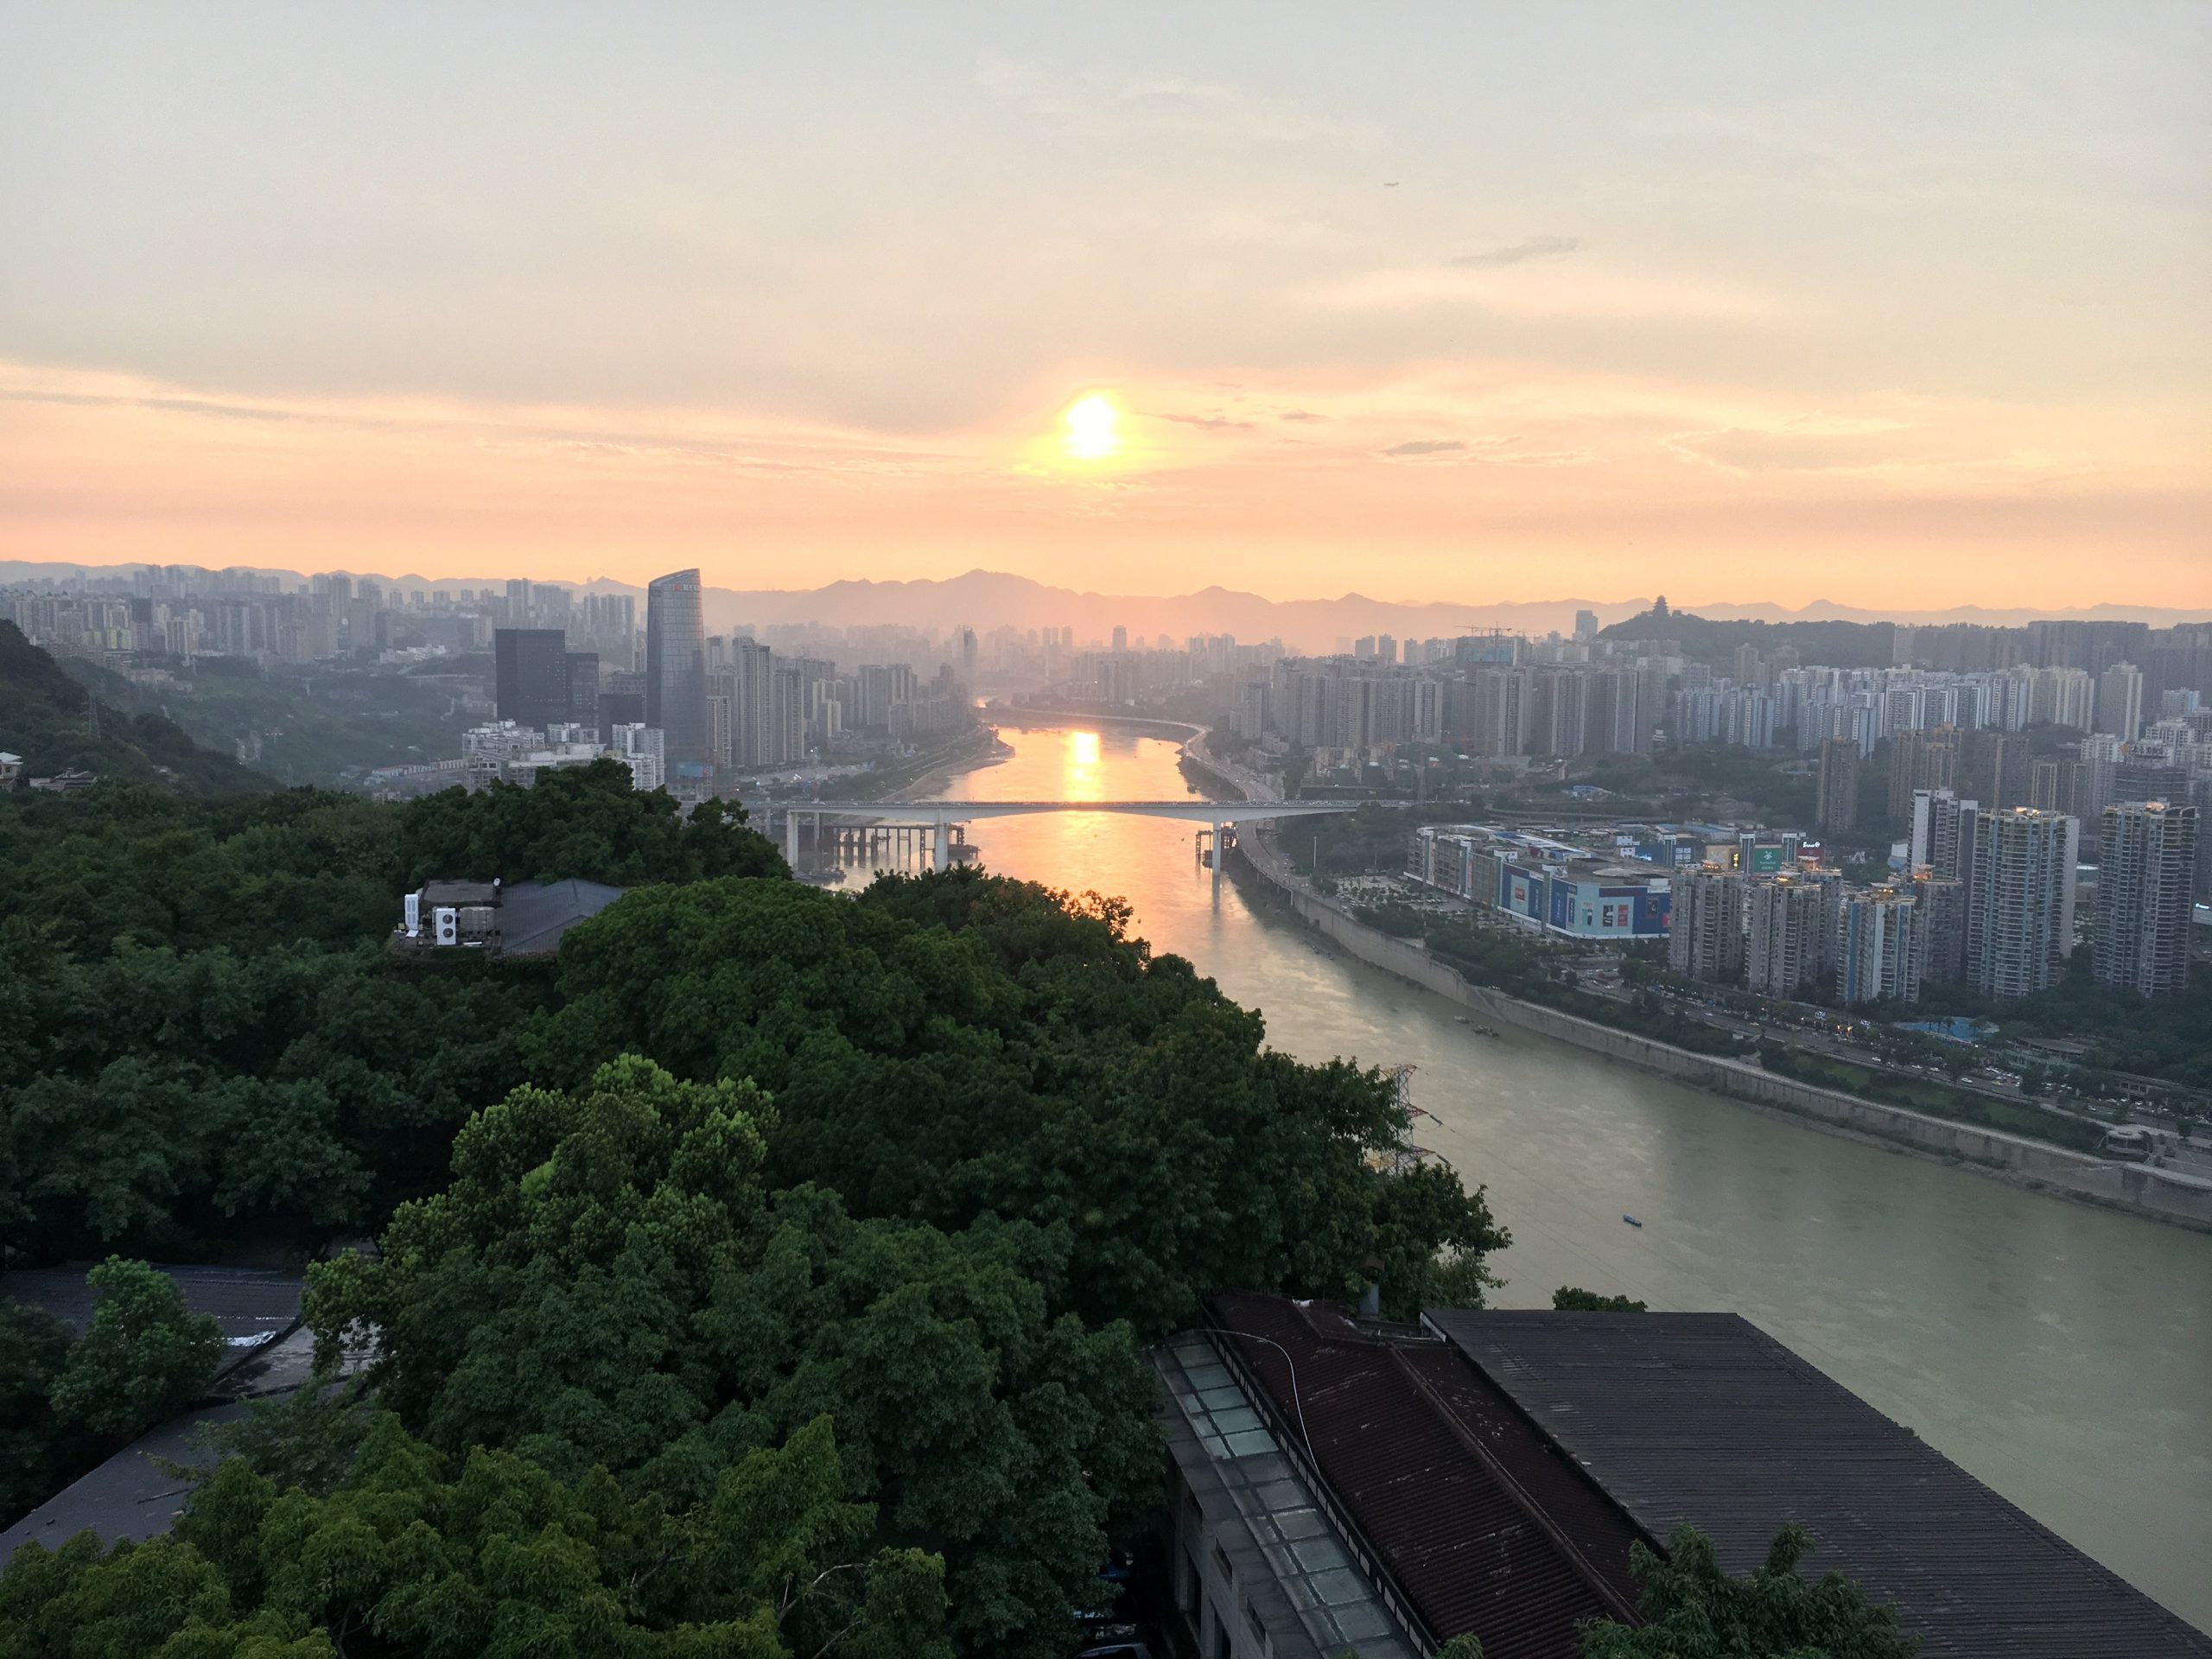 Chongqing view of the landscape along the river. Cityscape